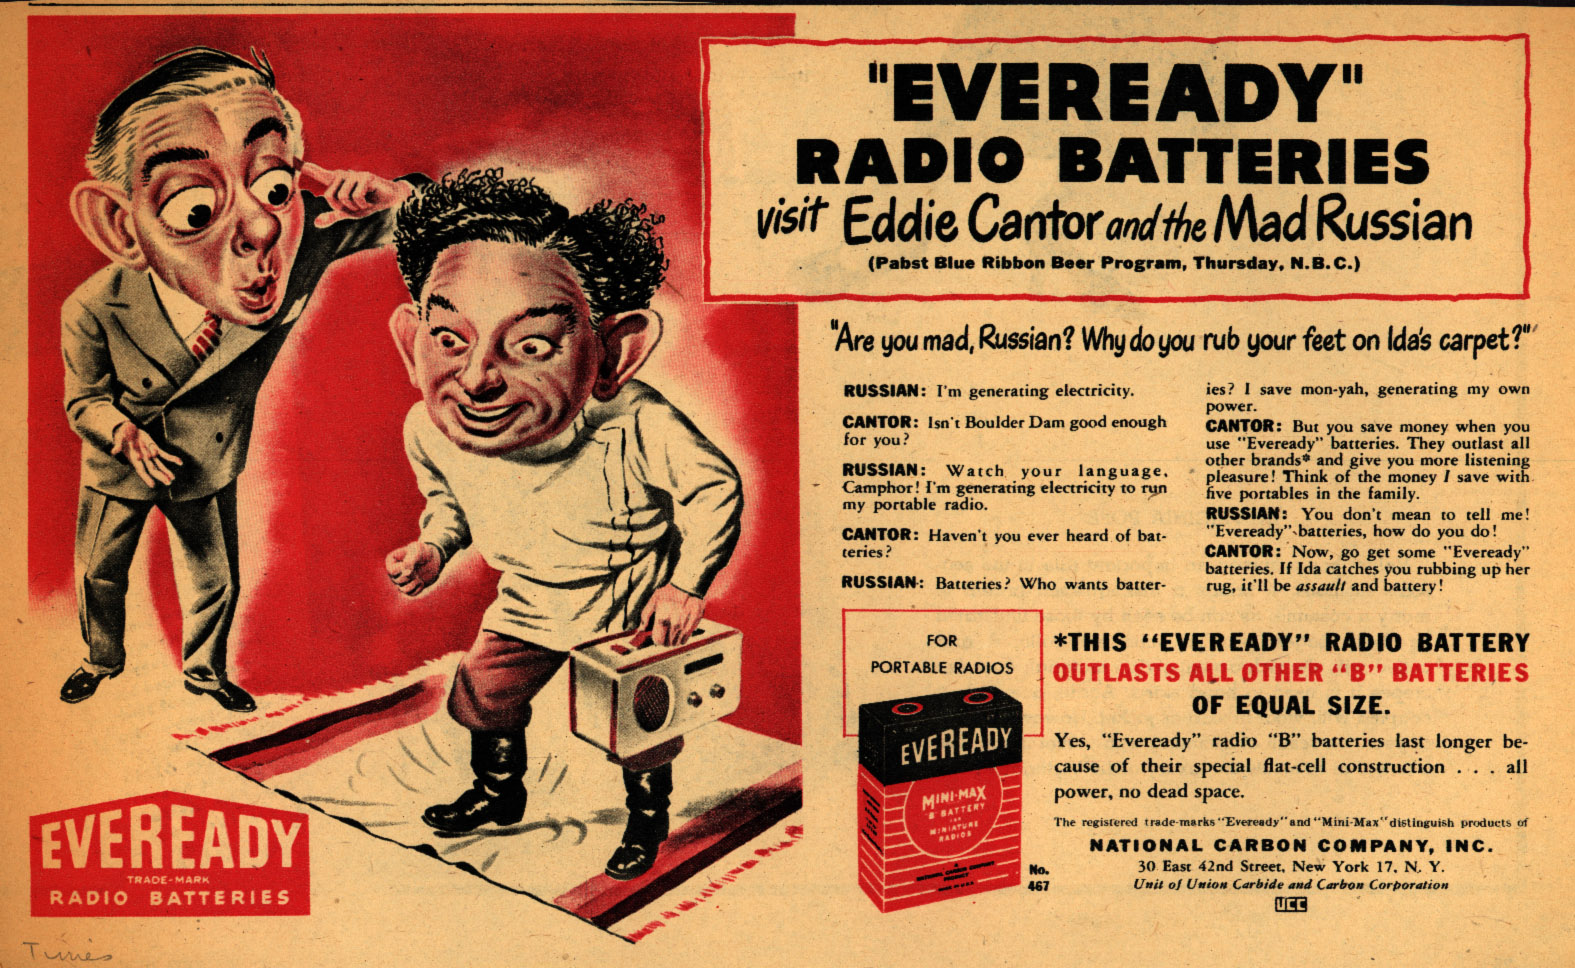 Eveready_Radio_Batteries_visit_Eddie_Cantor_and_the_Mad_Russian